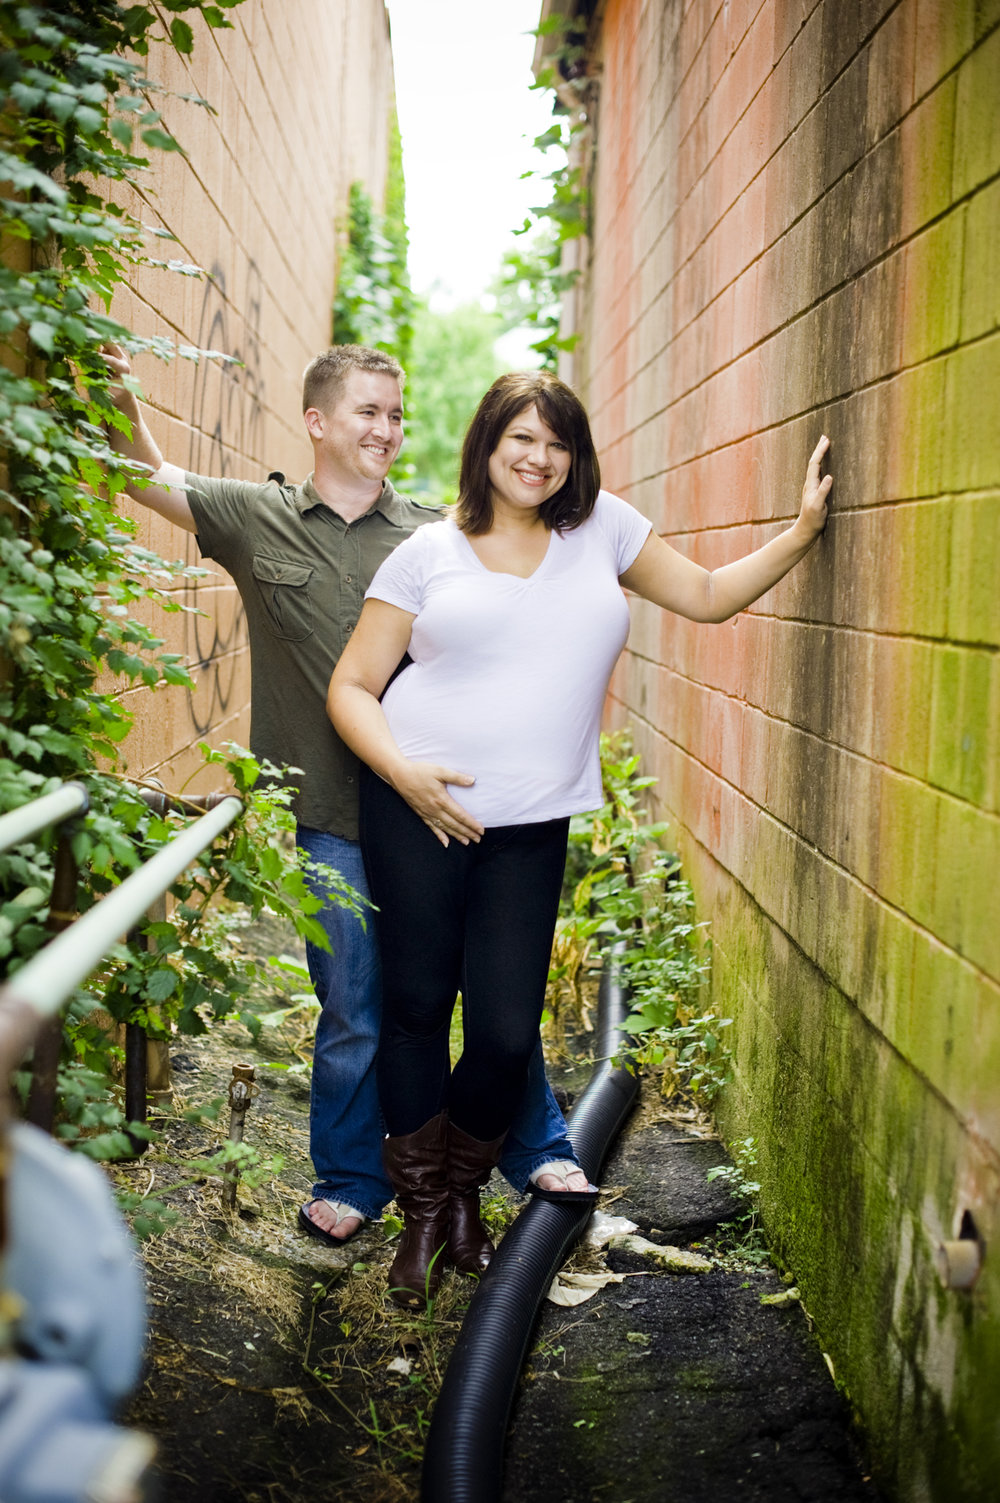 Maternity Photographer Nashville Tennessee The Velvet Trunk-0019.jpg